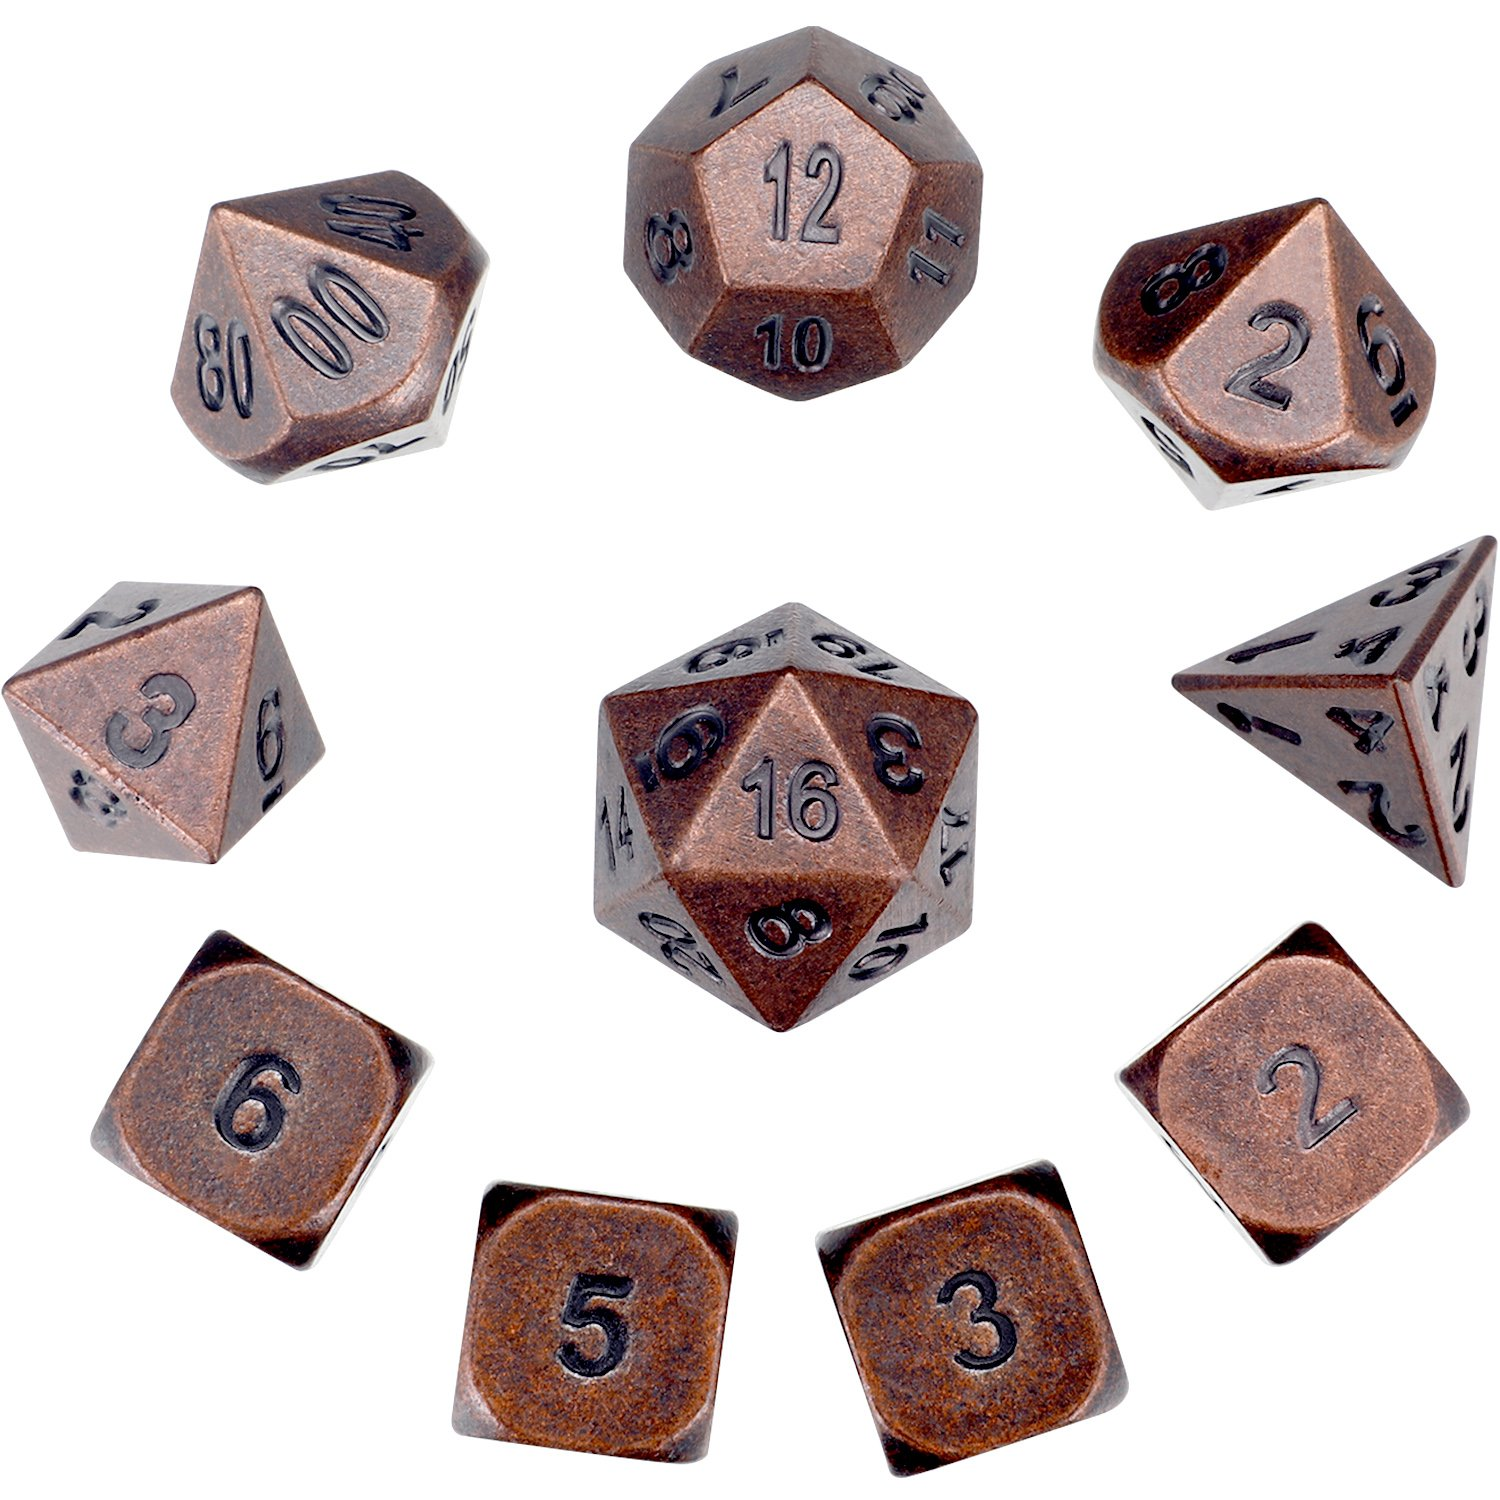 Hestya 10 Pieces Metal Dices Set DND Game Polyhedral Solid D&D Dice Set with Storage Bag and Zinc Alloy with Printed Numbers for Role Playing Game Dungeons and Dragons, Math Teaching (Red Copper)